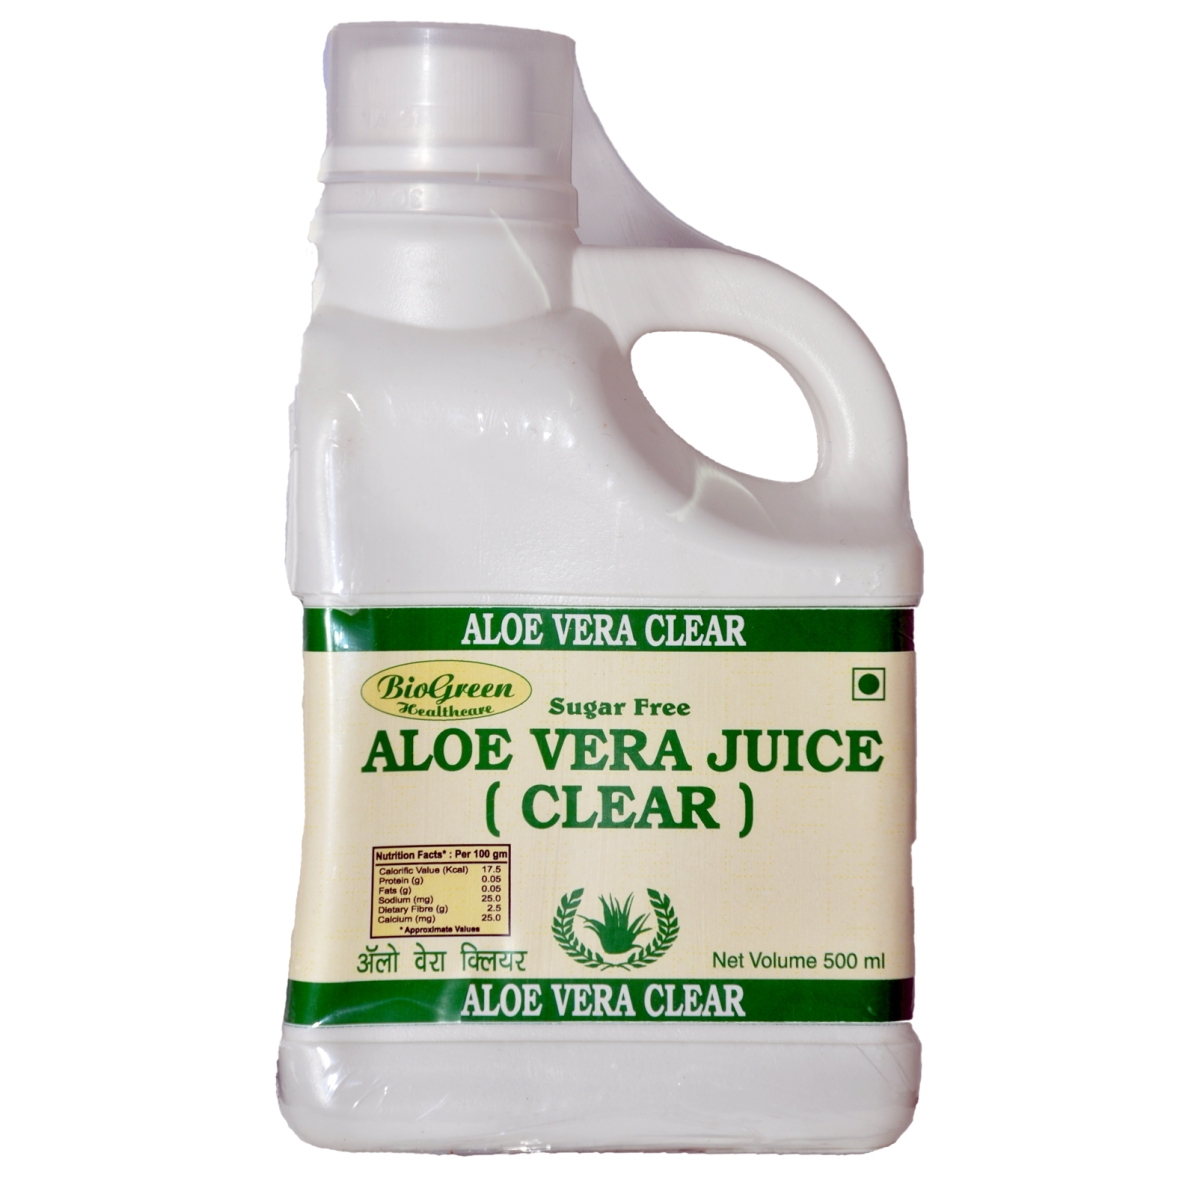 Aloe vera Clear Juice In Shivamogga